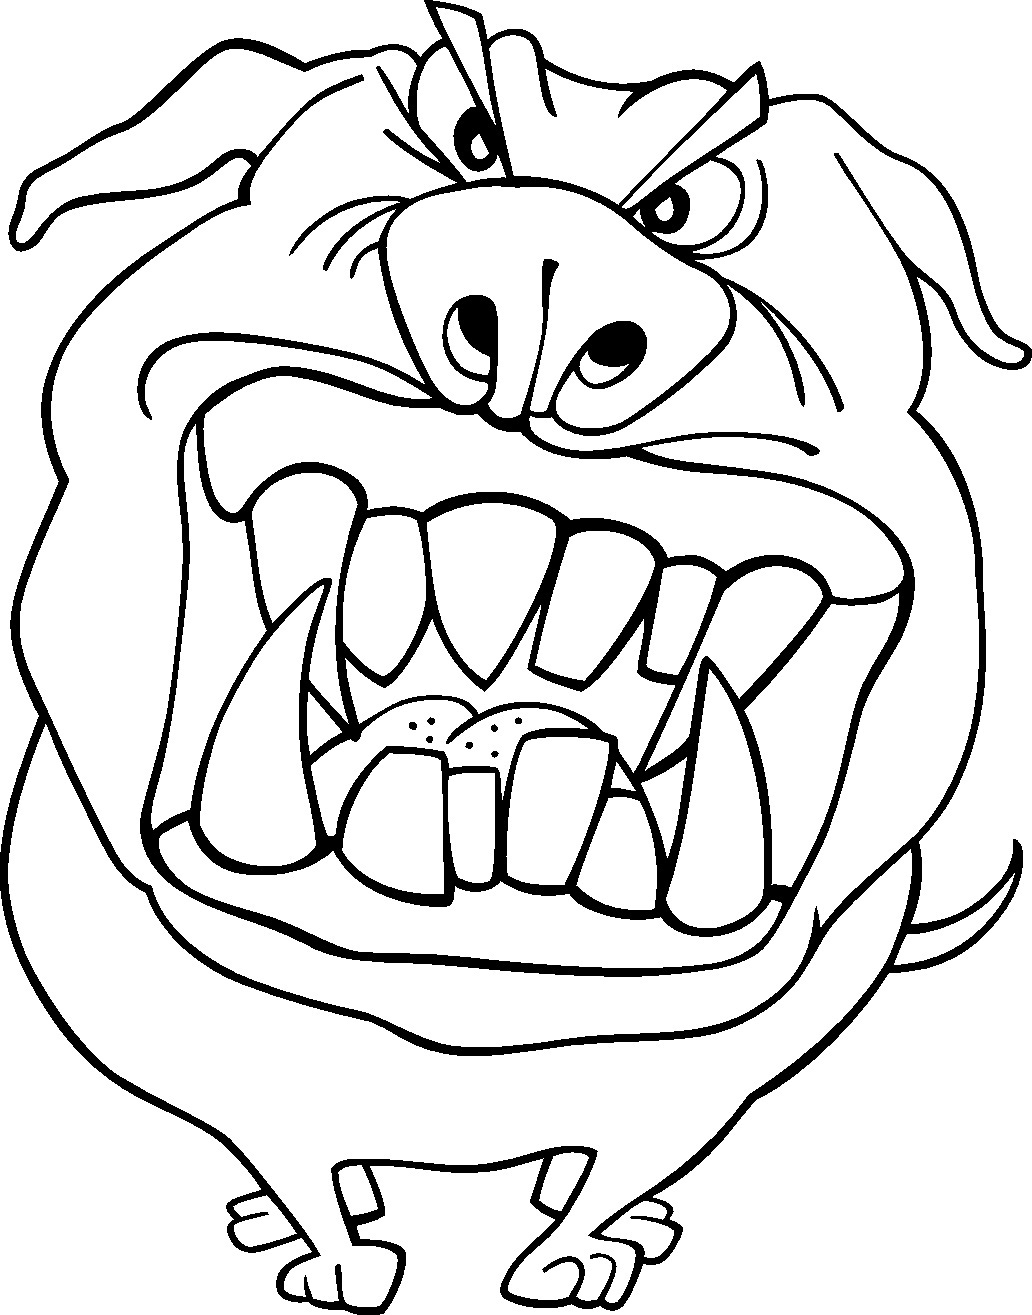 funny pictures to color funny turkey coloring pages pictures funny color to